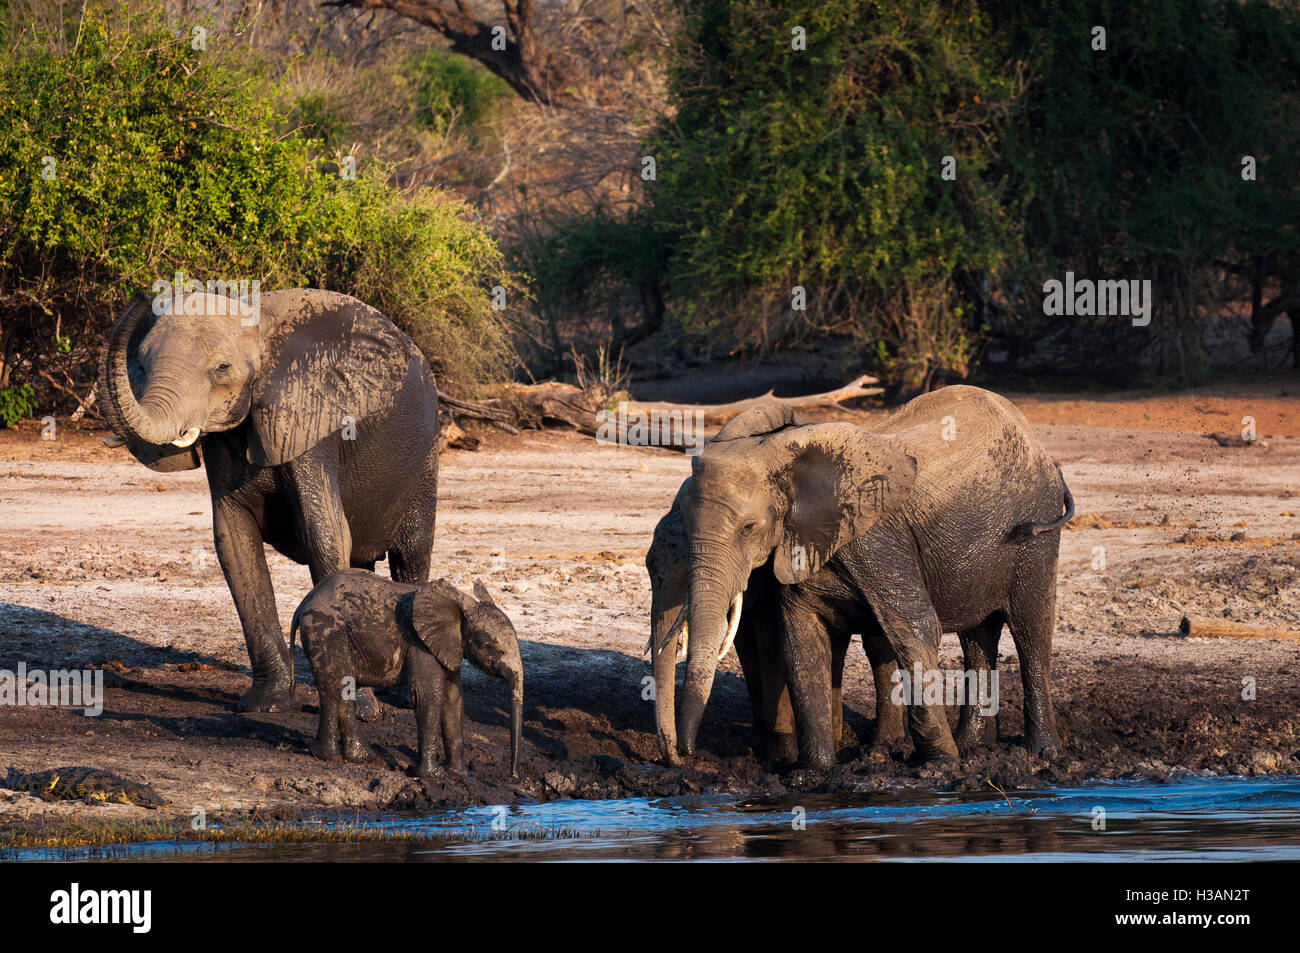 Herd of elephants drinking and playing in the mud in the Chobe River, Chobe National Park, in Botswana, Africa - Stock Image